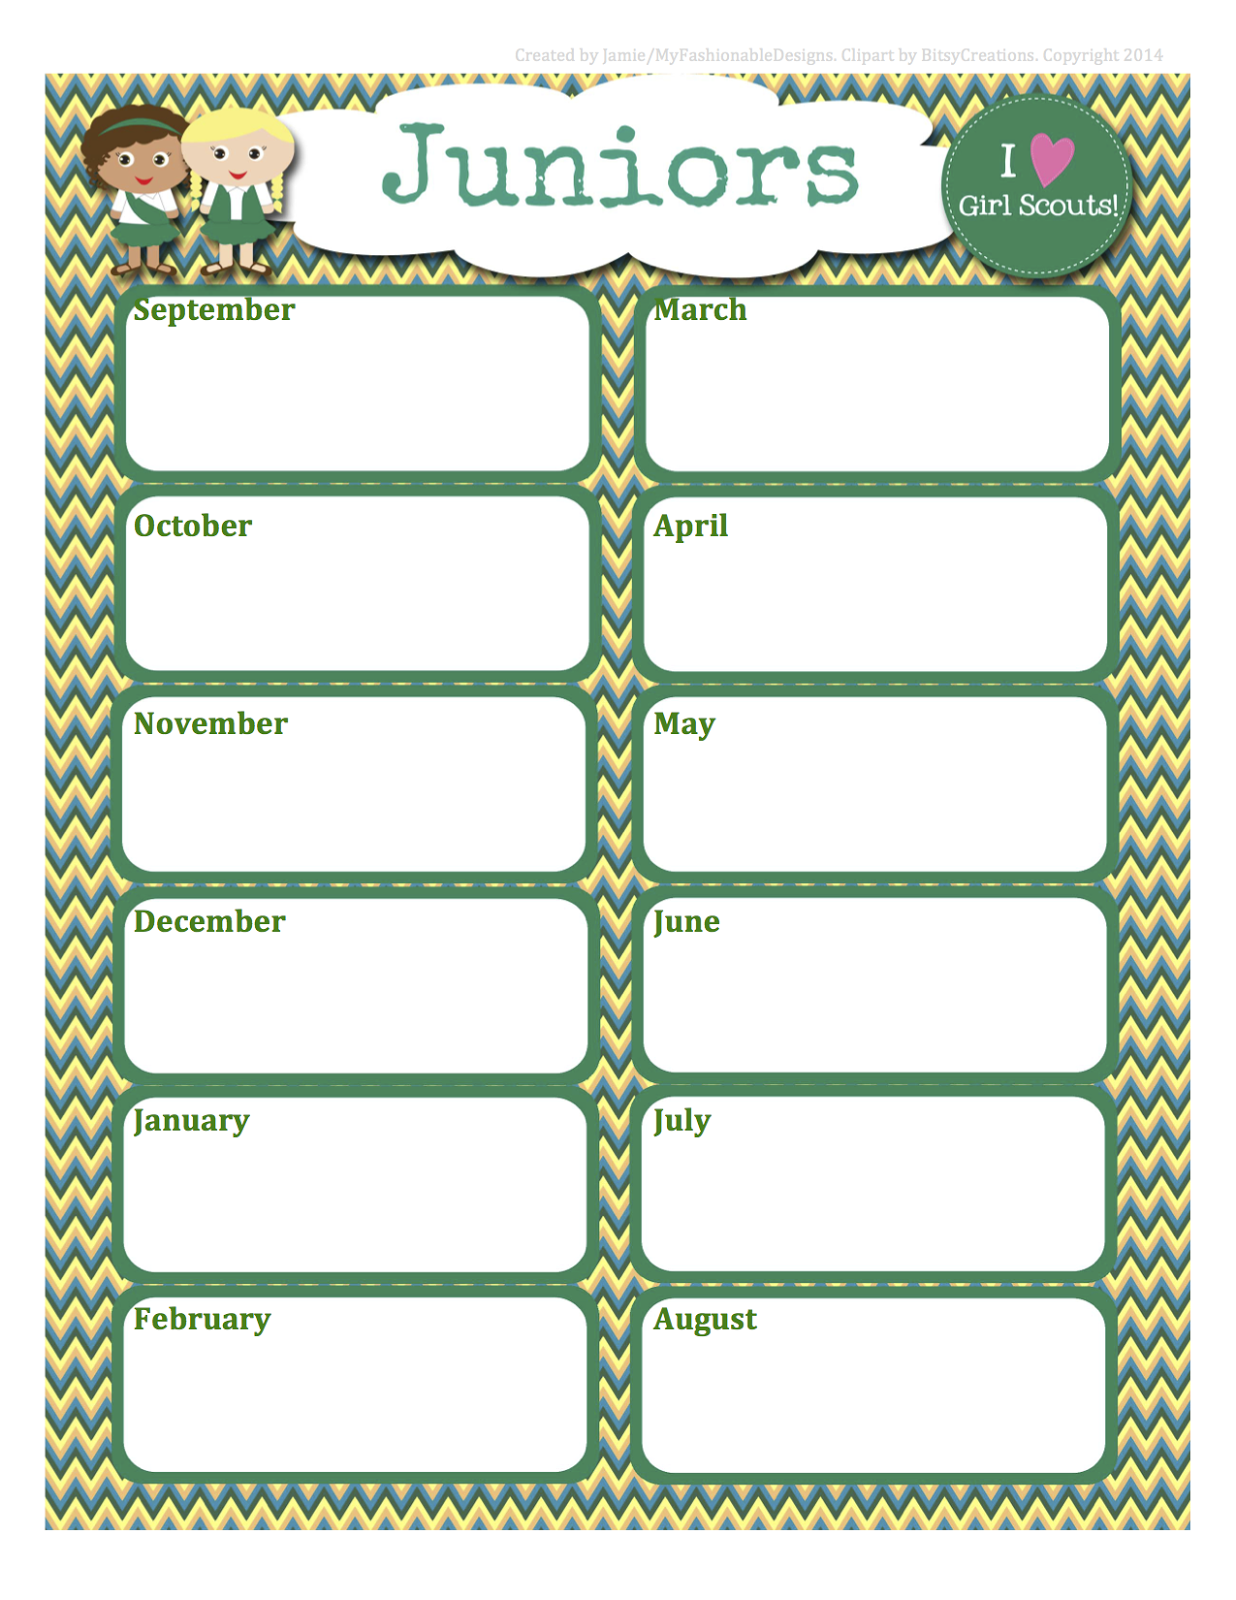 My Fashionable Designs Girl Scouts Free Juniors Calendar